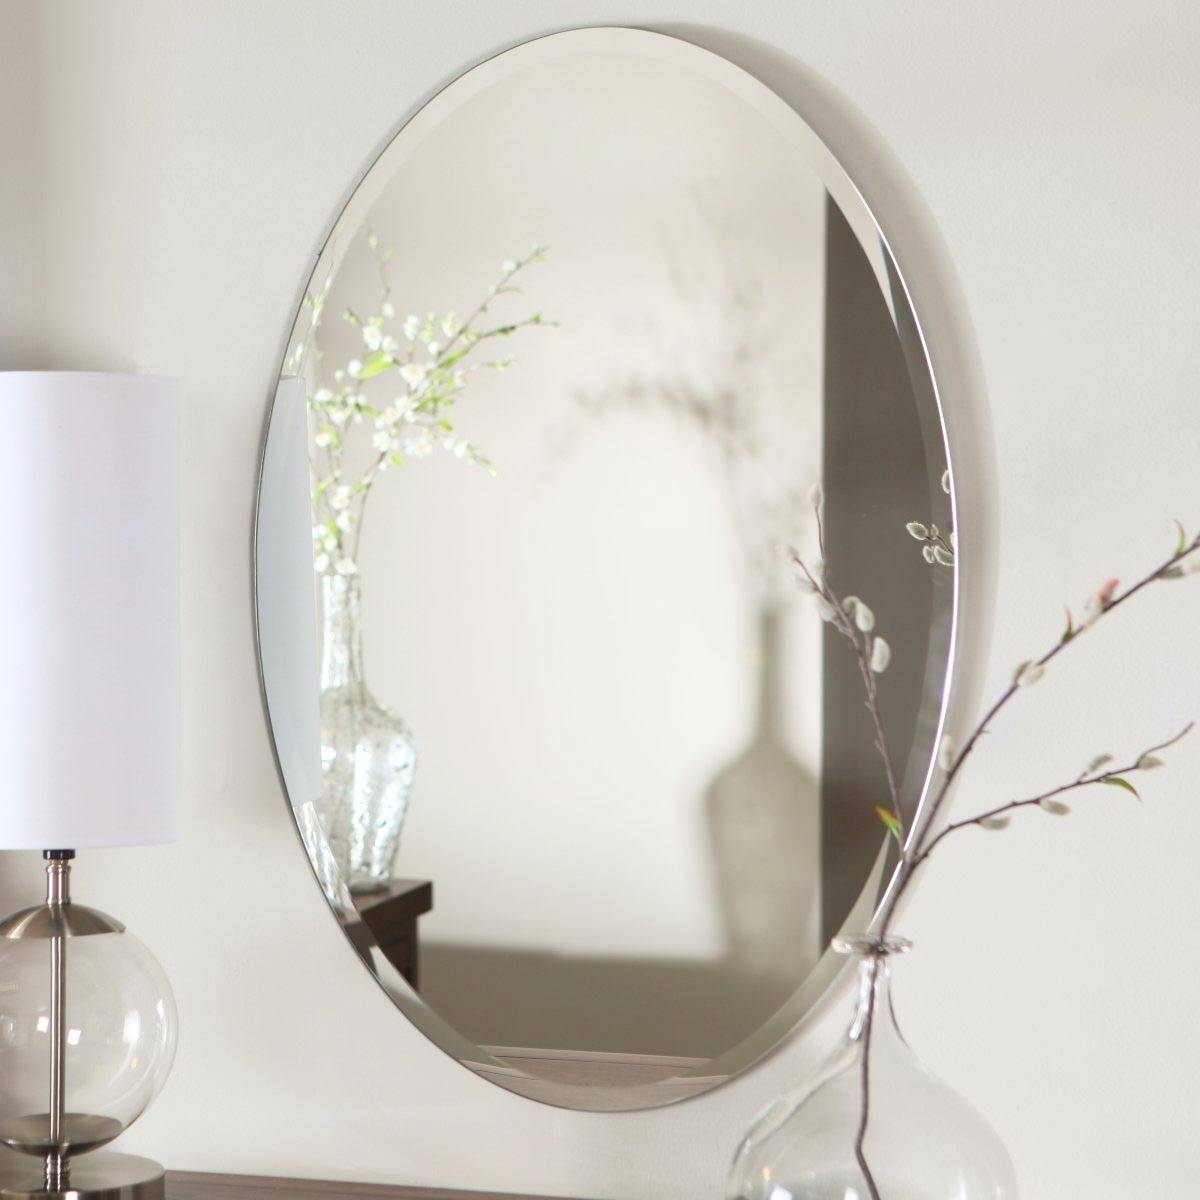 Large Oval Mirrors For Bathroom Walls | Home inside Oval Mirrors for Walls (Image 12 of 25)